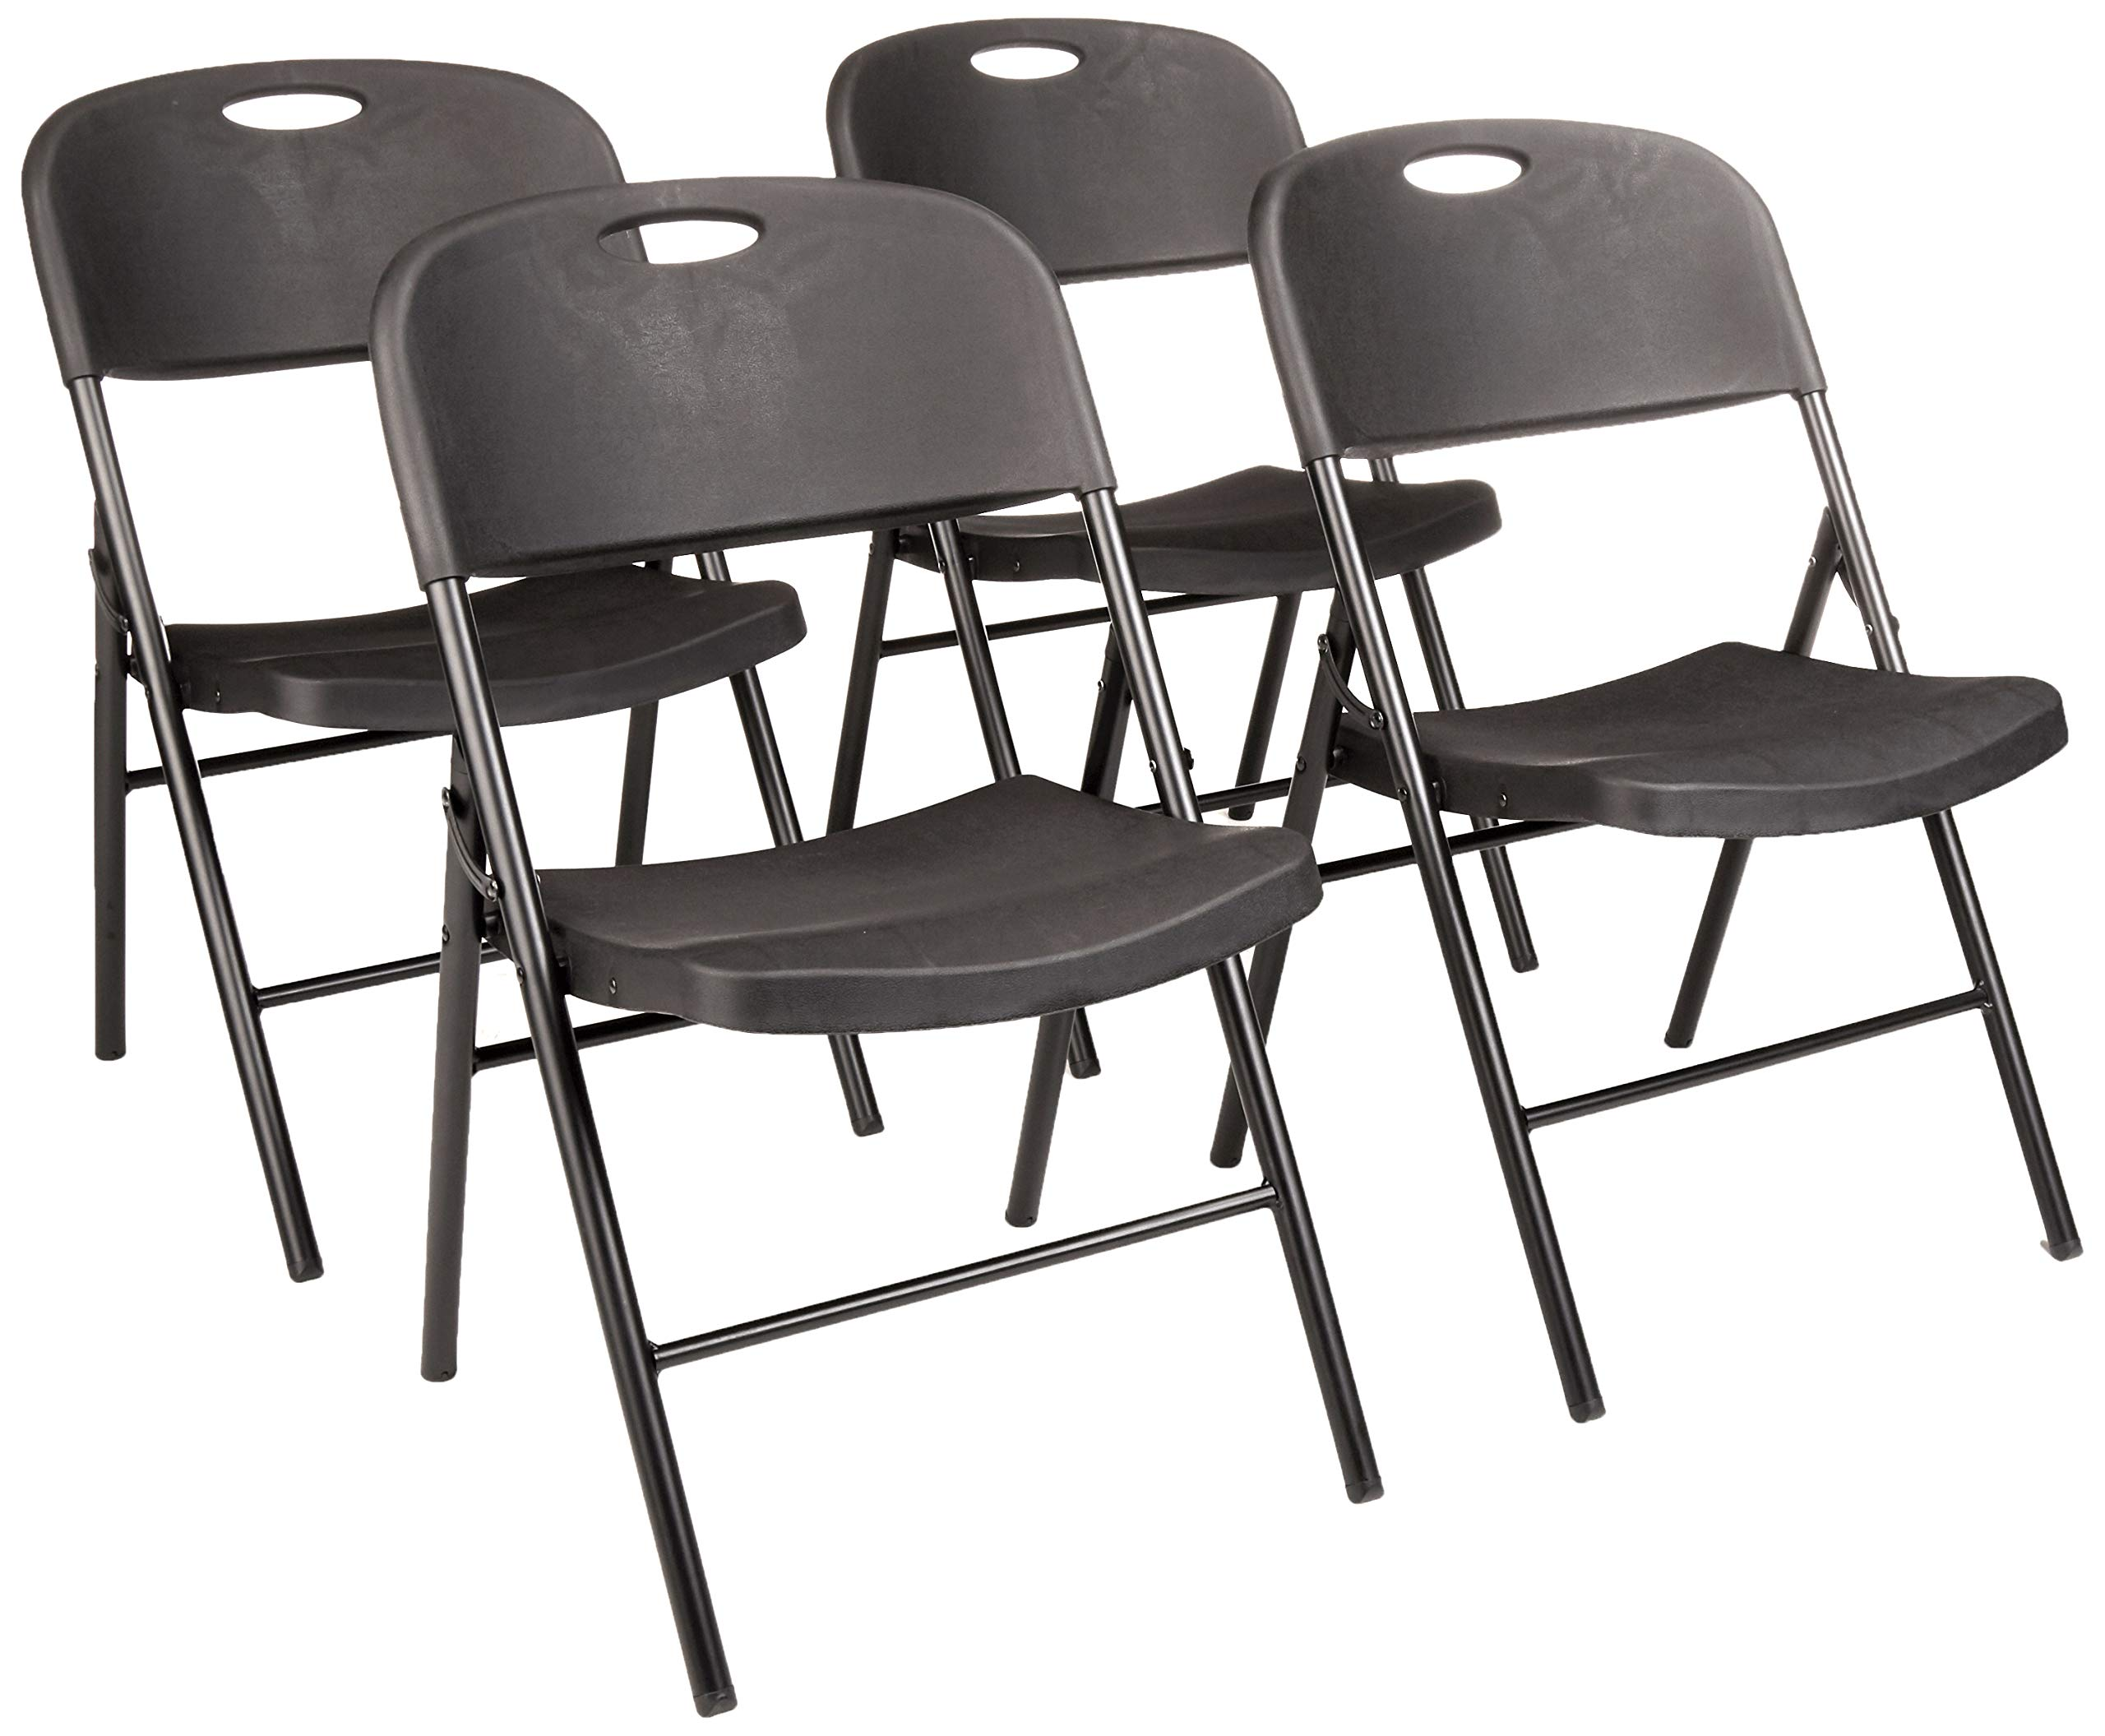 AmazonBasics Folding Plastic Chair, 350-Pound Capacity, Black, Set of 4 by AmazonBasics